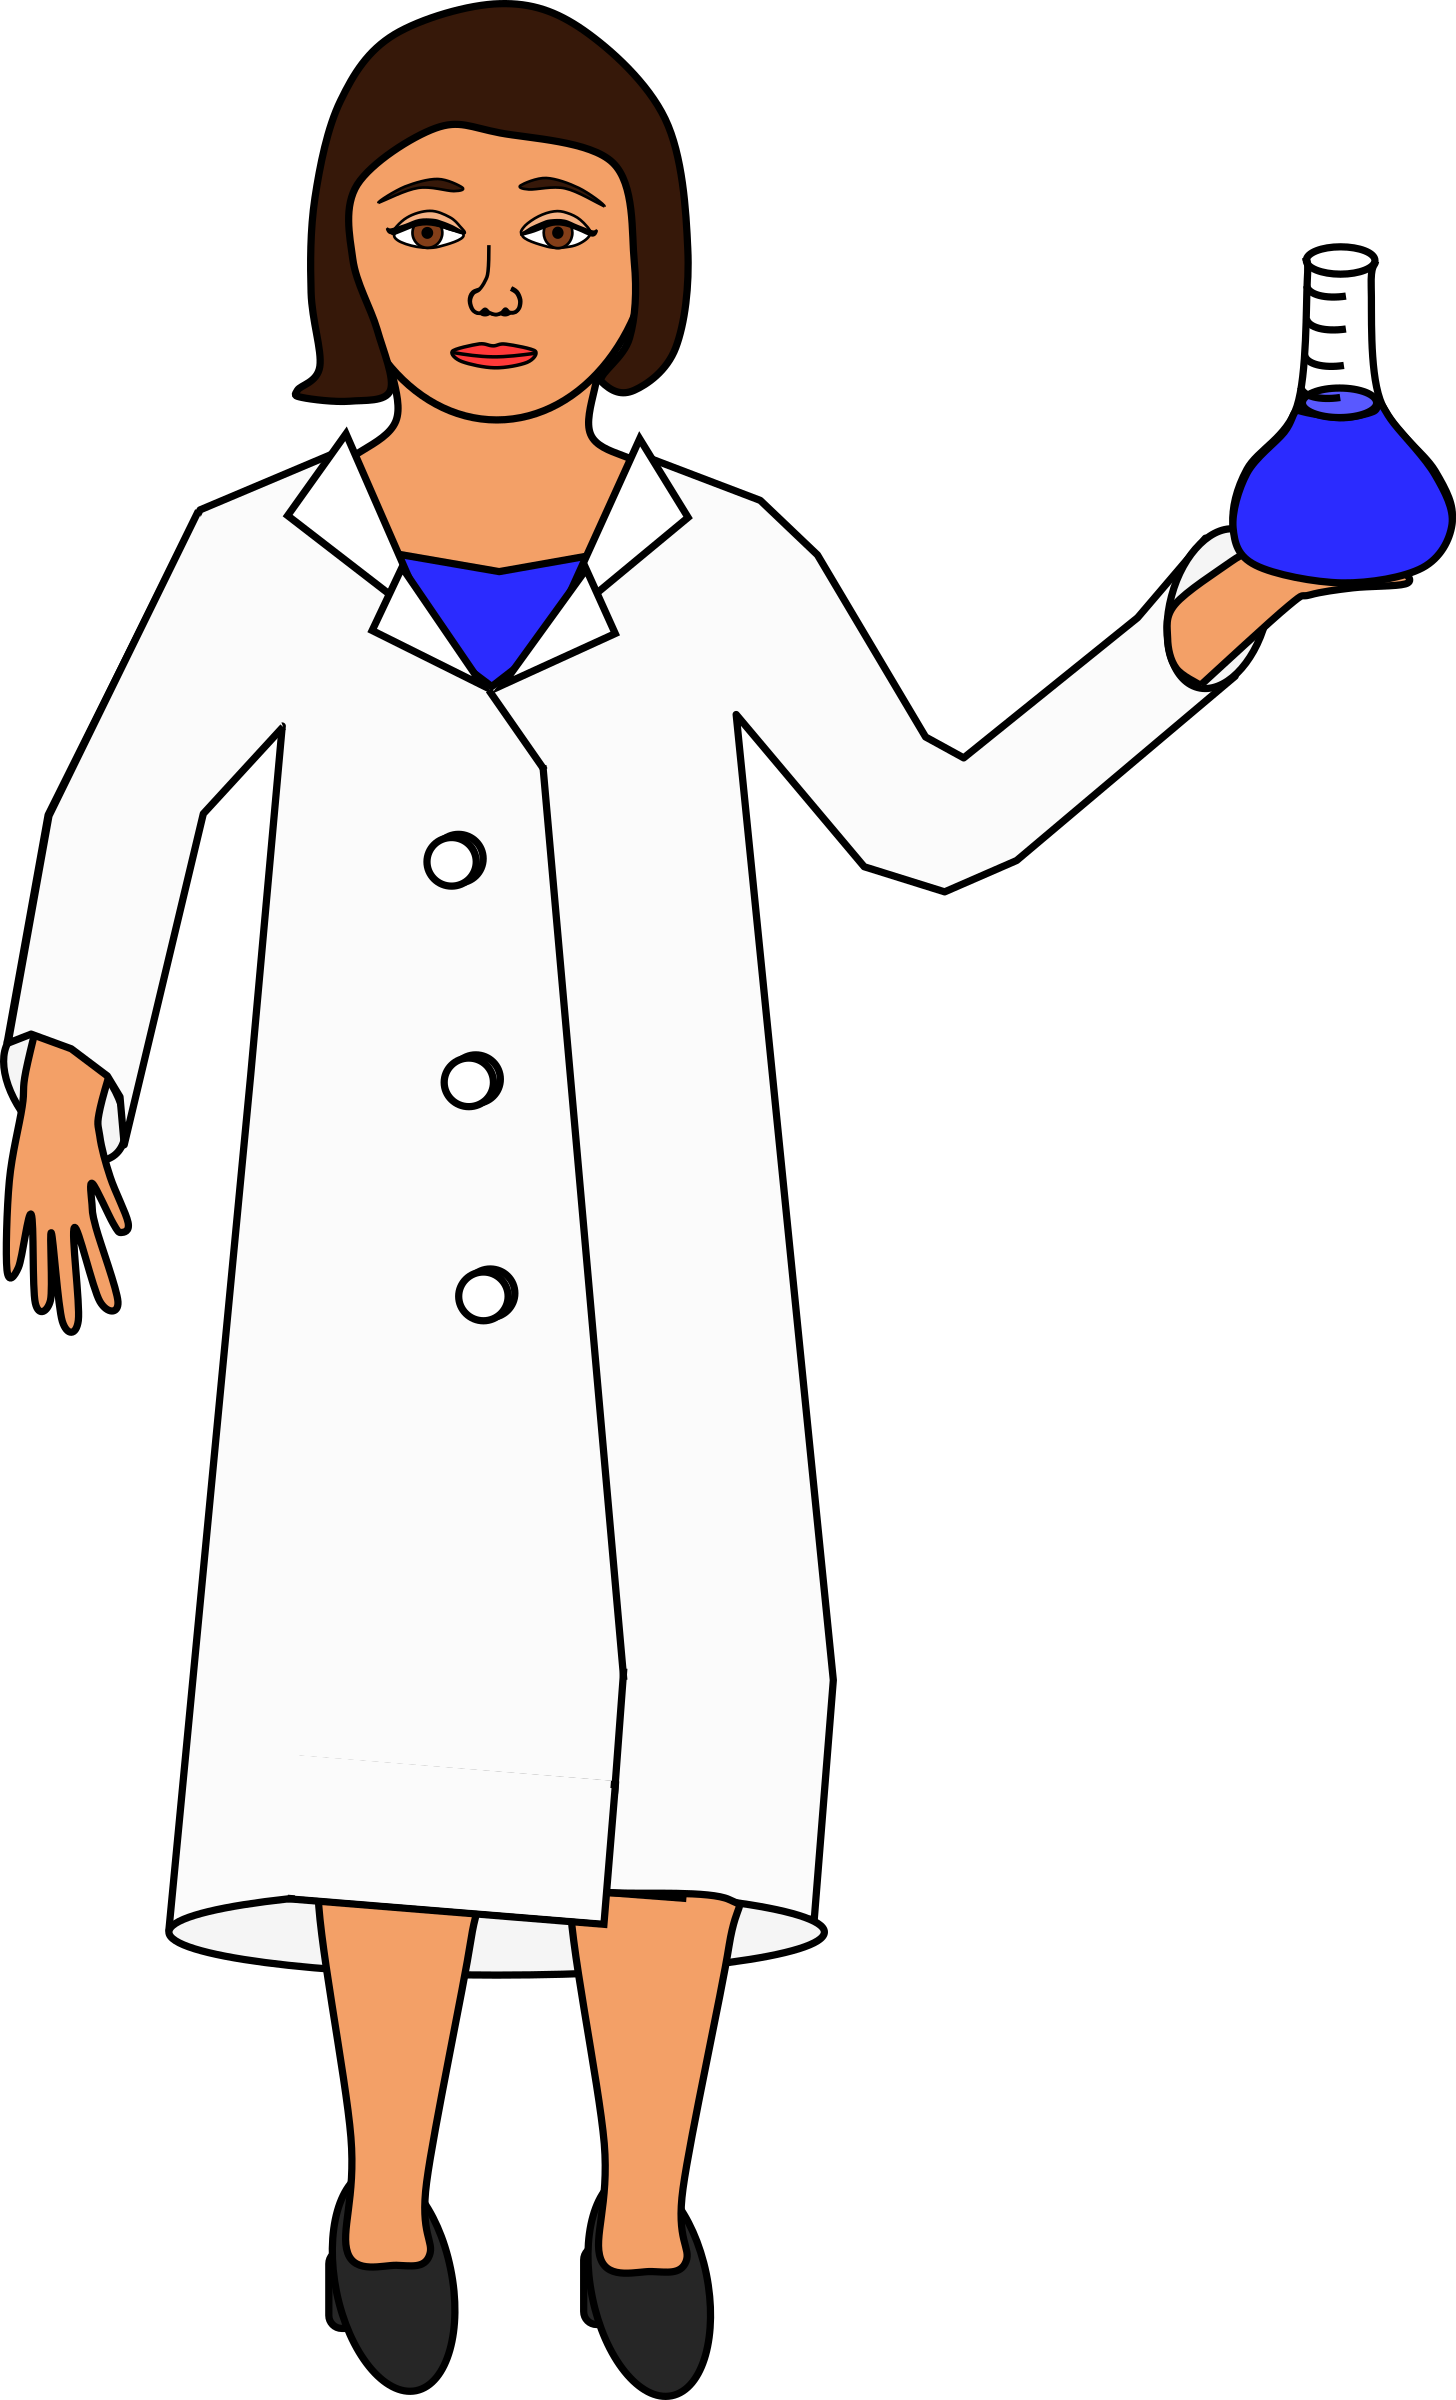 download scientist high quality png transparent png #31762